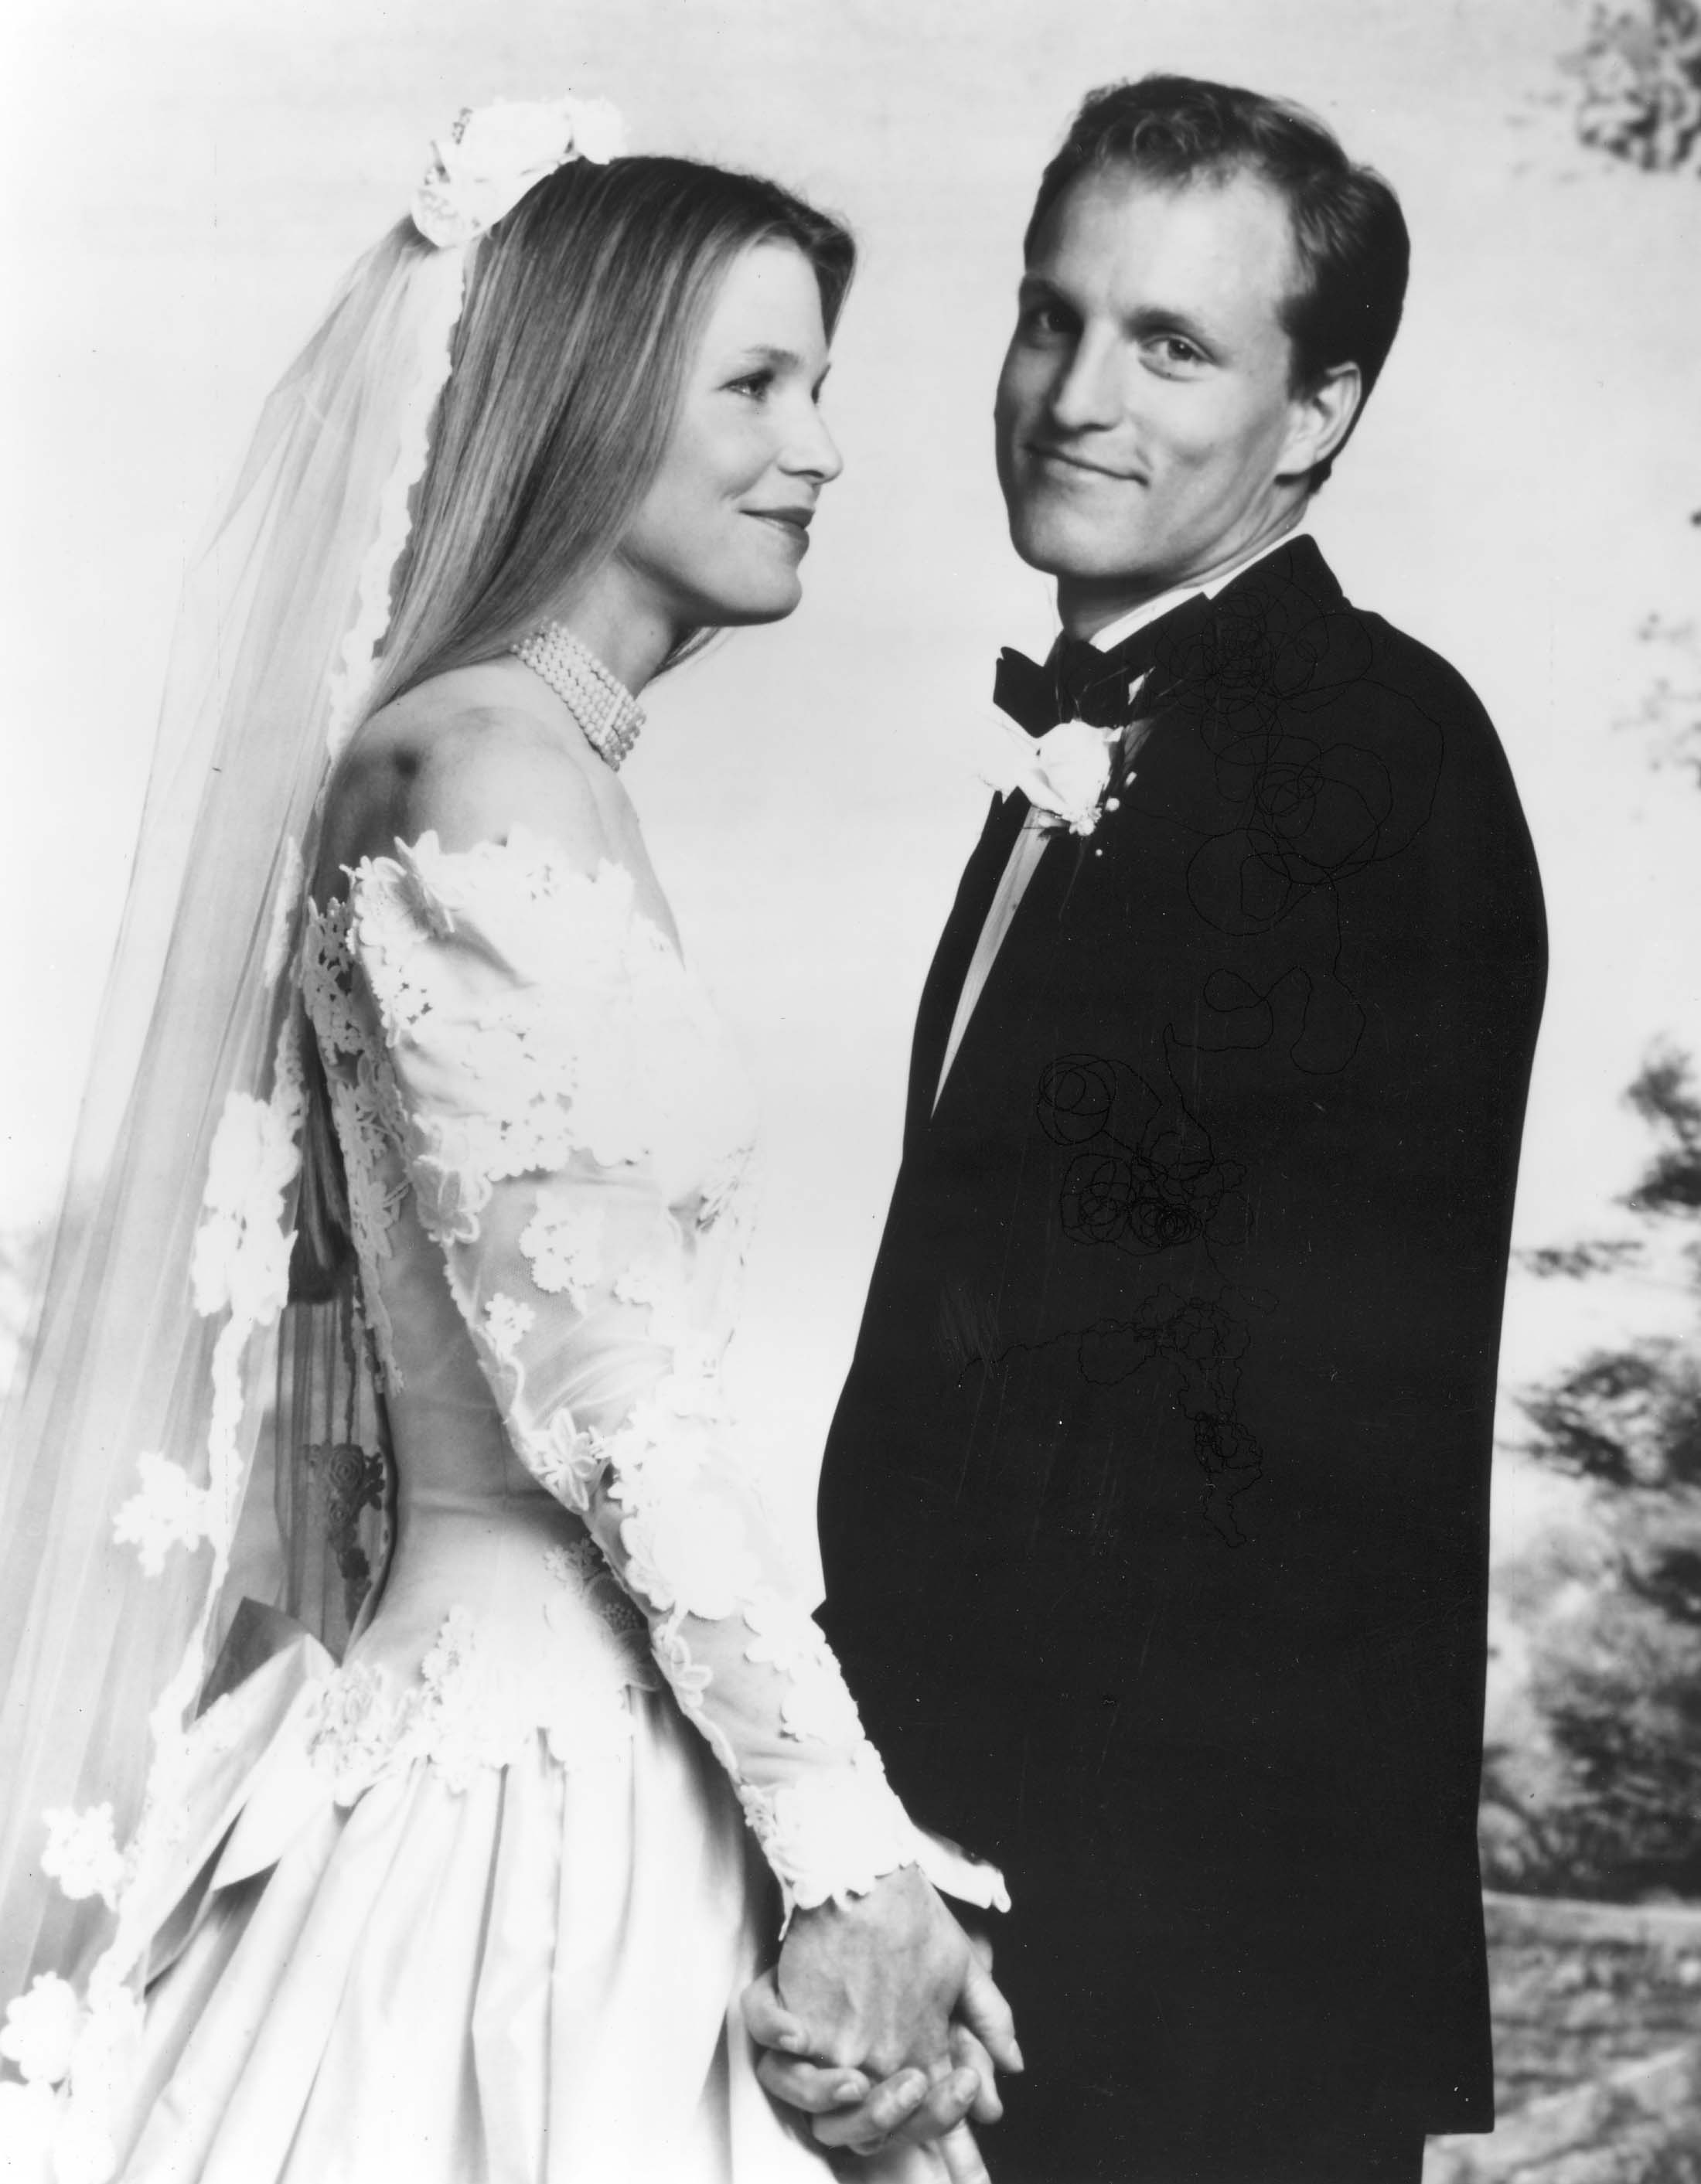 Jackie Swanson Images cheers - jackie swanson and woody harrelson - sitcoms online